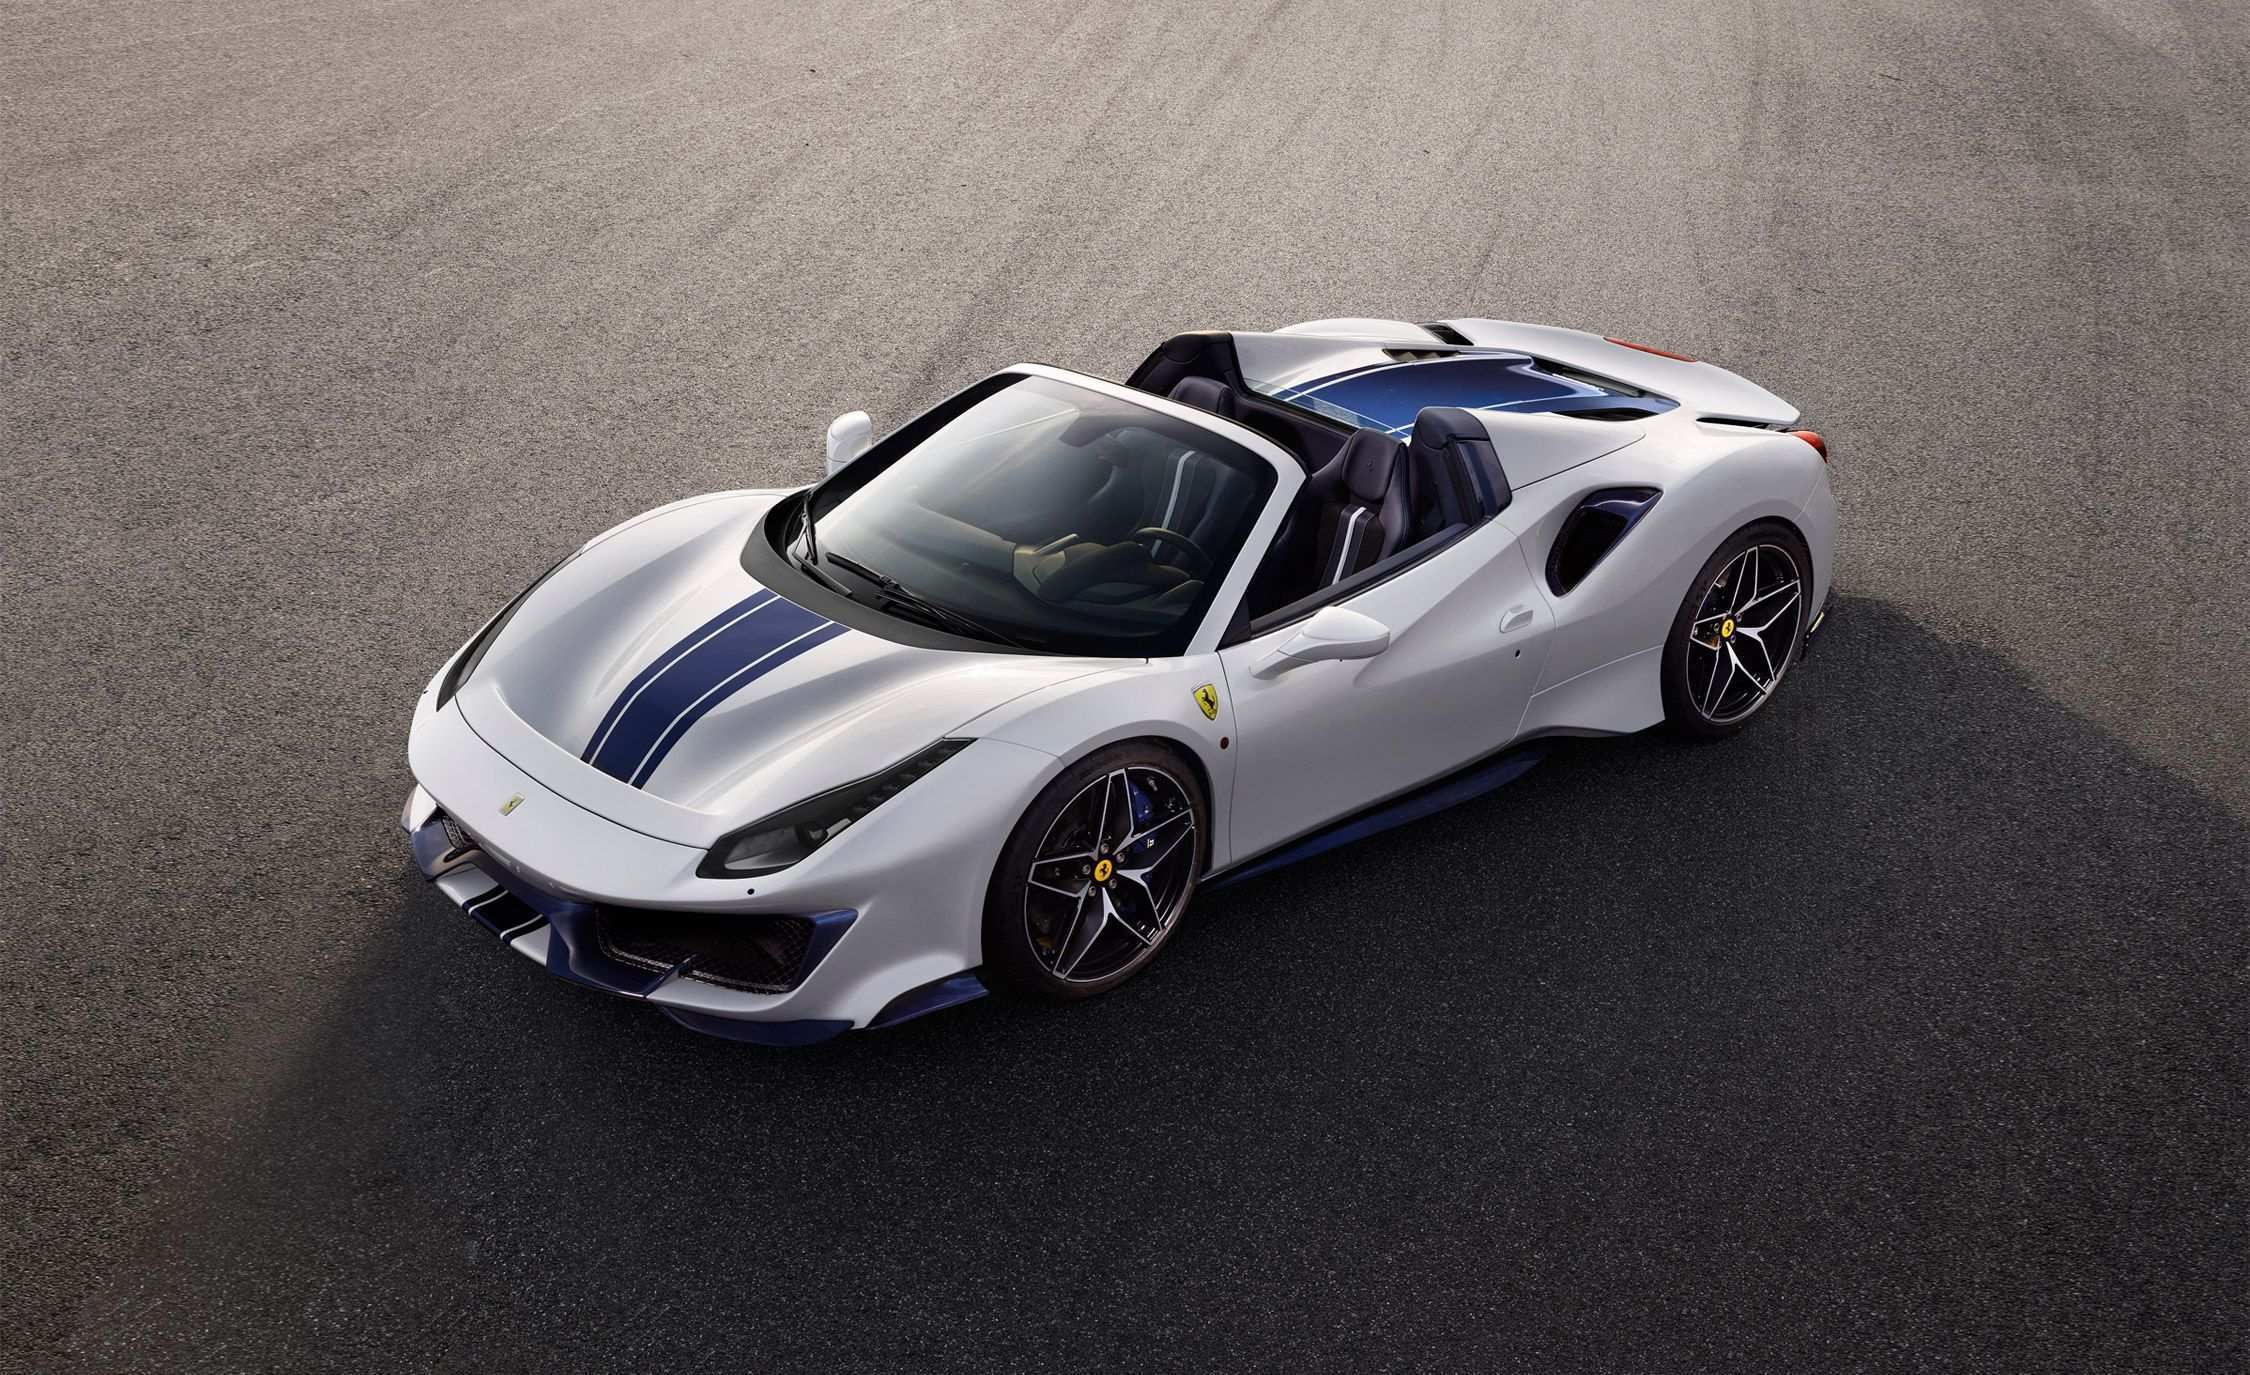 60 All New Ferrari Supercar 2019 Images by Ferrari Supercar 2019